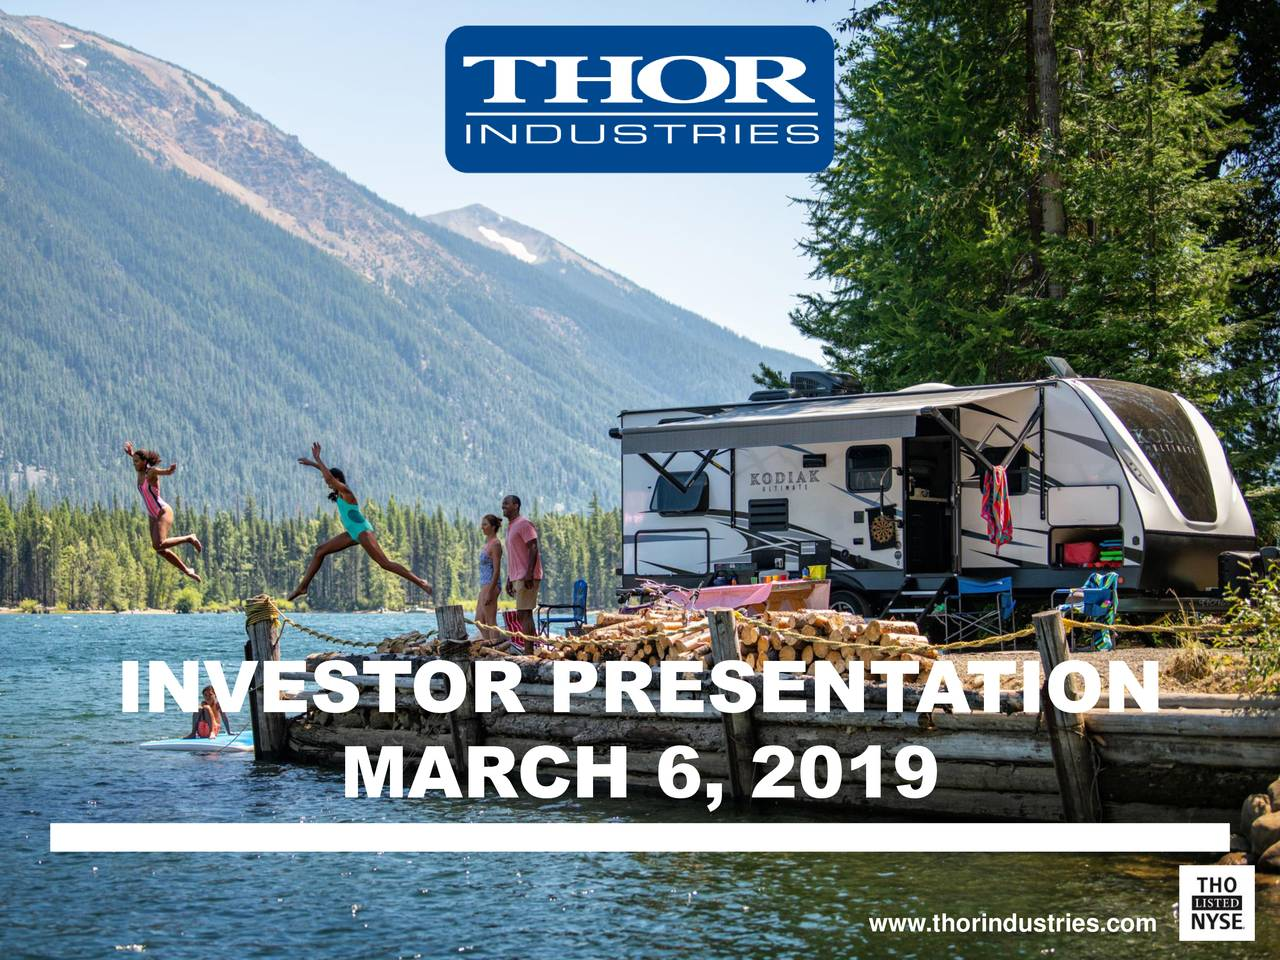 MARCH 6, 2019 www.thorindustries.com